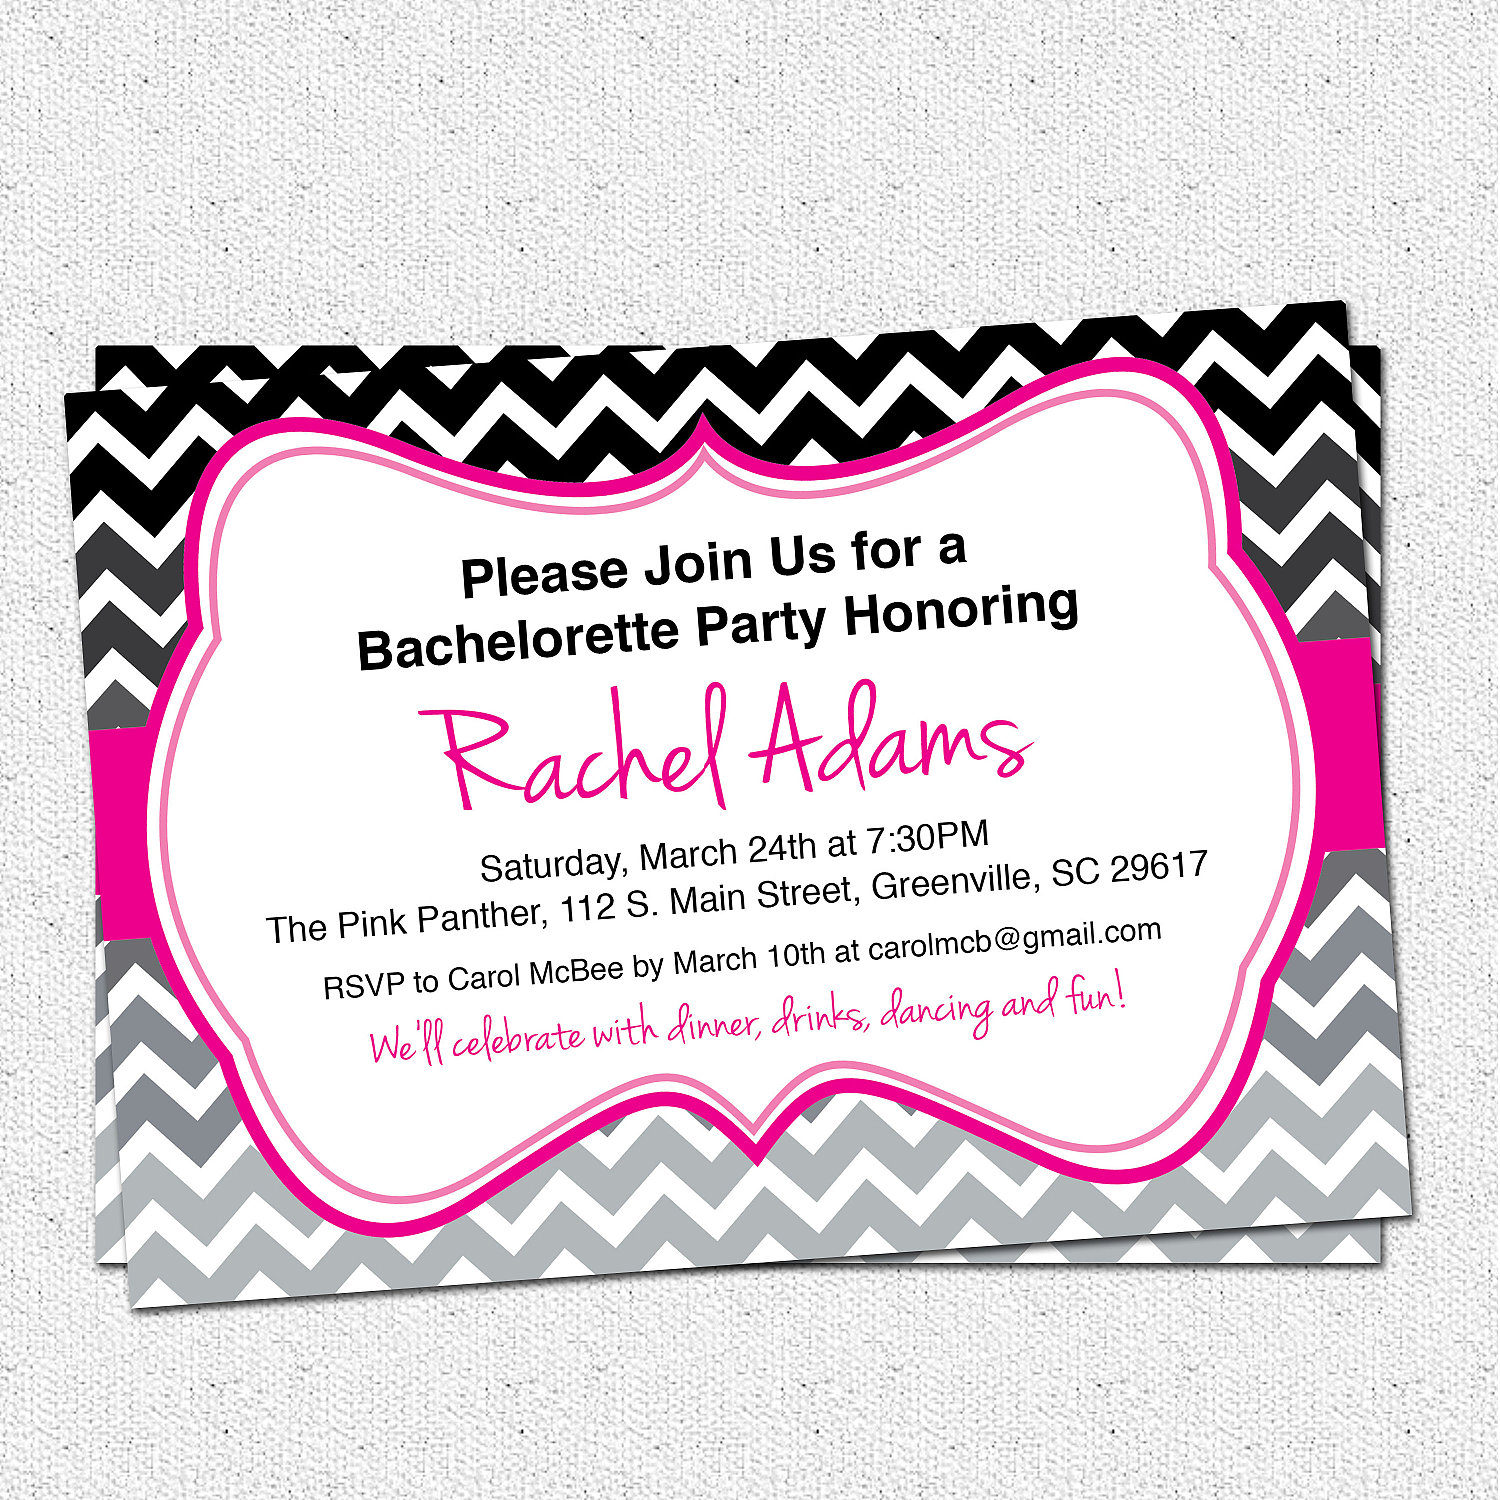 Bachelorette party invitations bridal shower birthday chevron bachelorette party invitations bridal shower birthday chevron hot pink grey black ombre filmwisefo